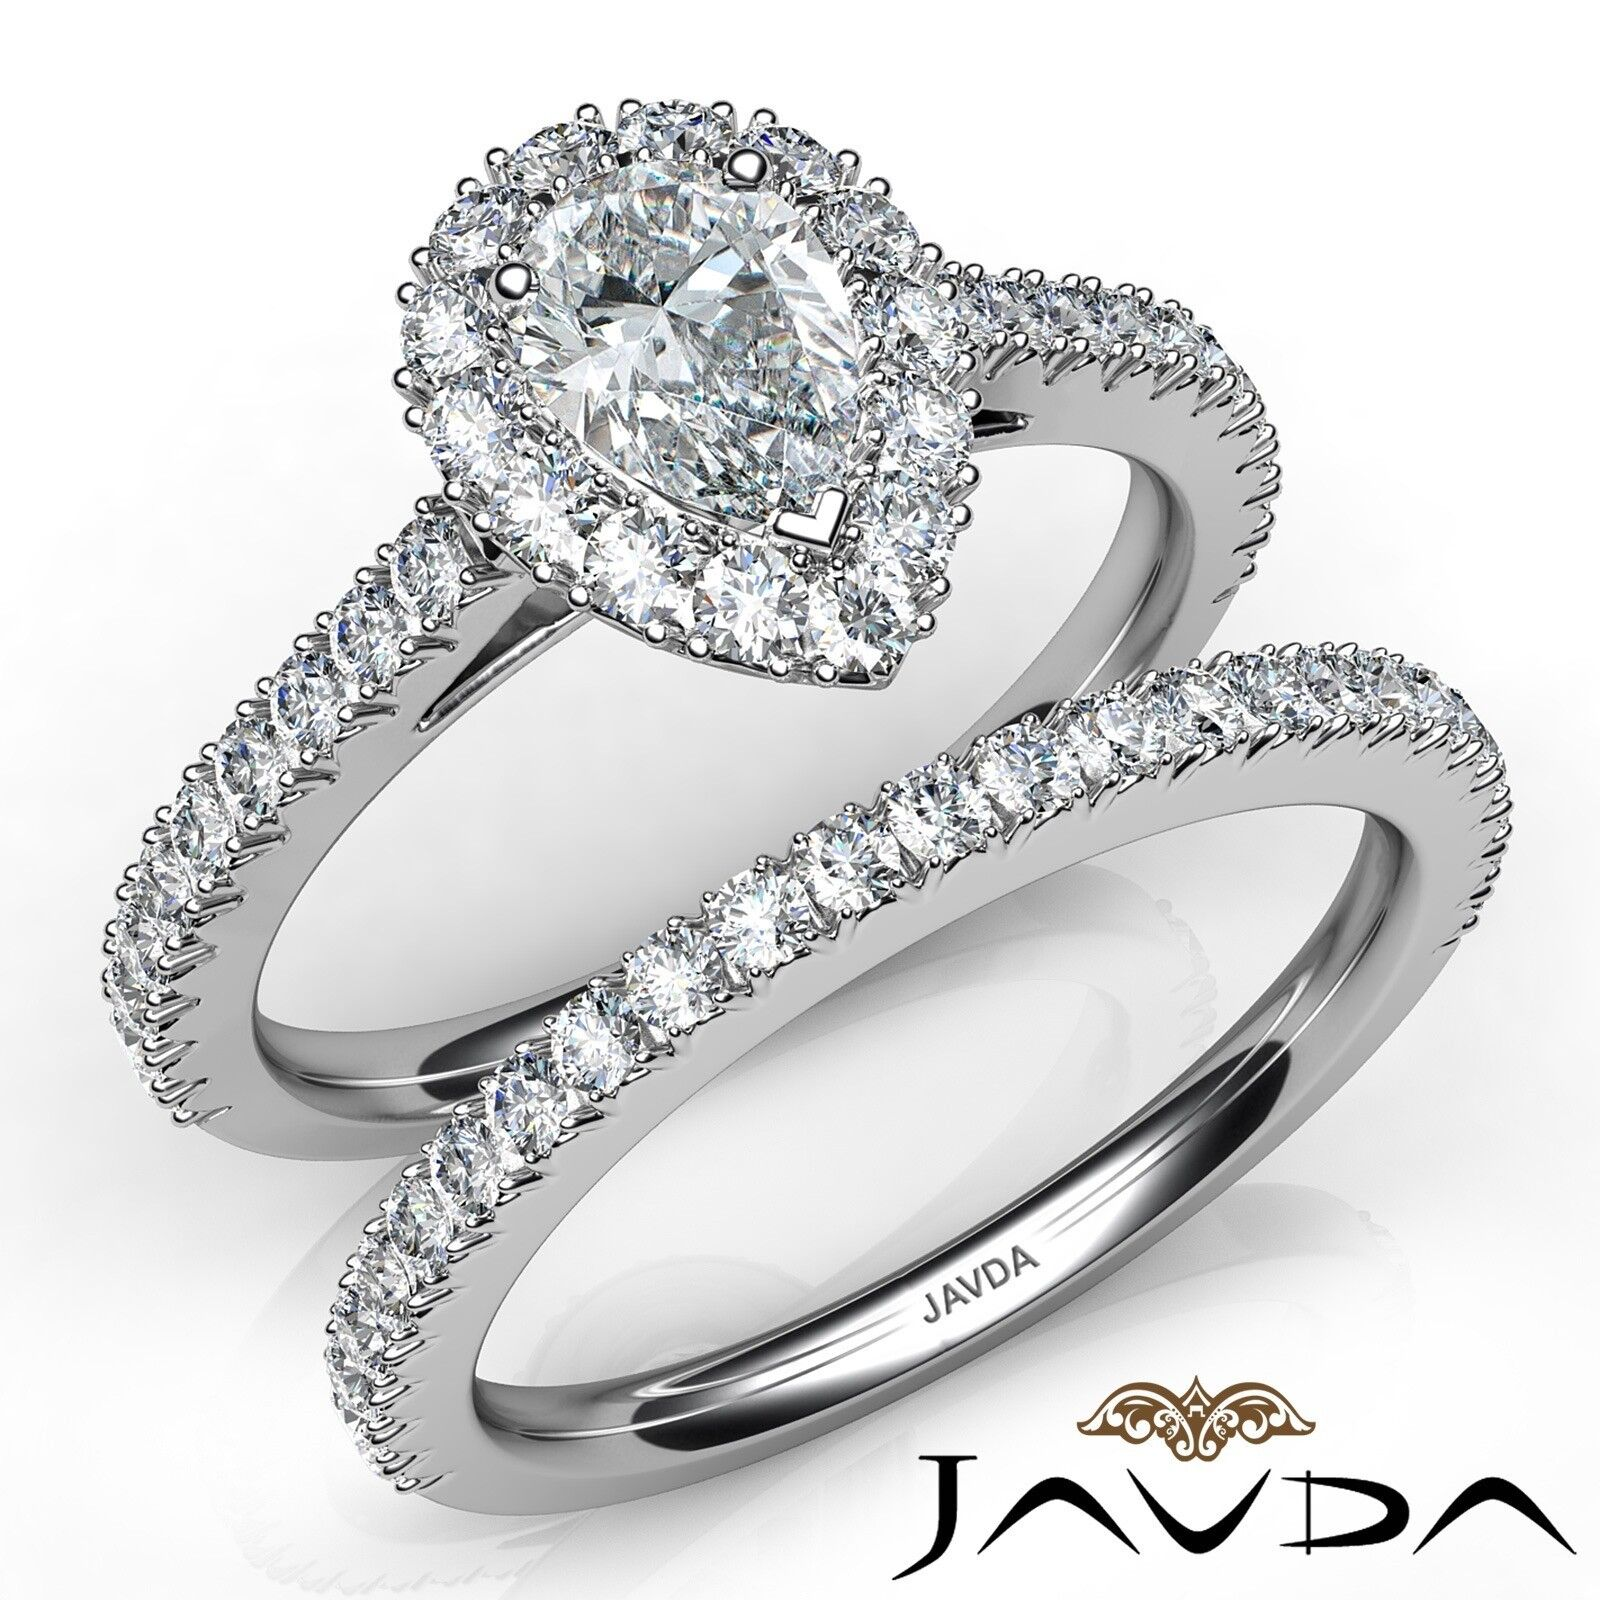 2ctw French Pave Bridal Set Halo Pear Diamond Engagement Ring GIA H-VS2 W Gold